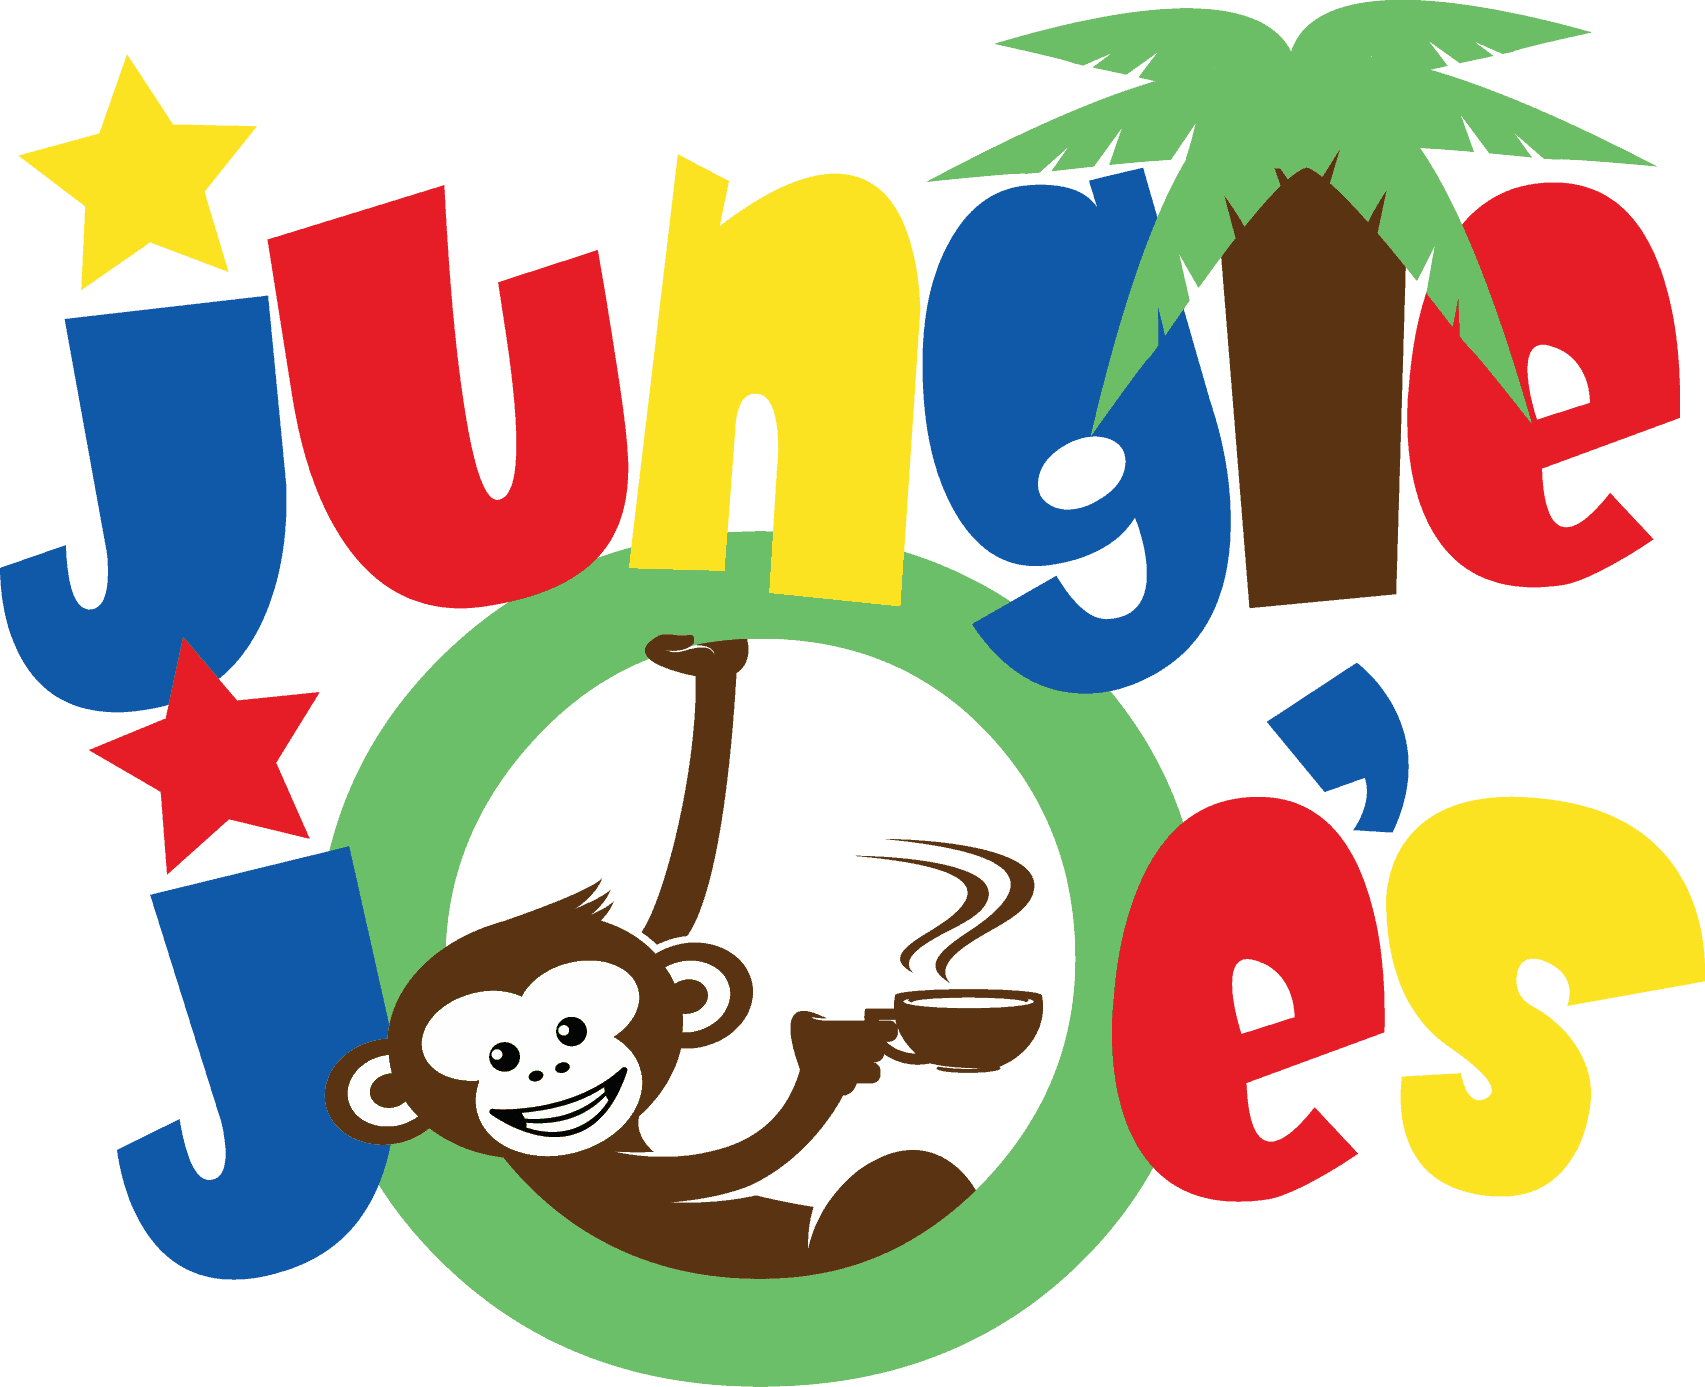 JungleJoes-LogoDesign-Final